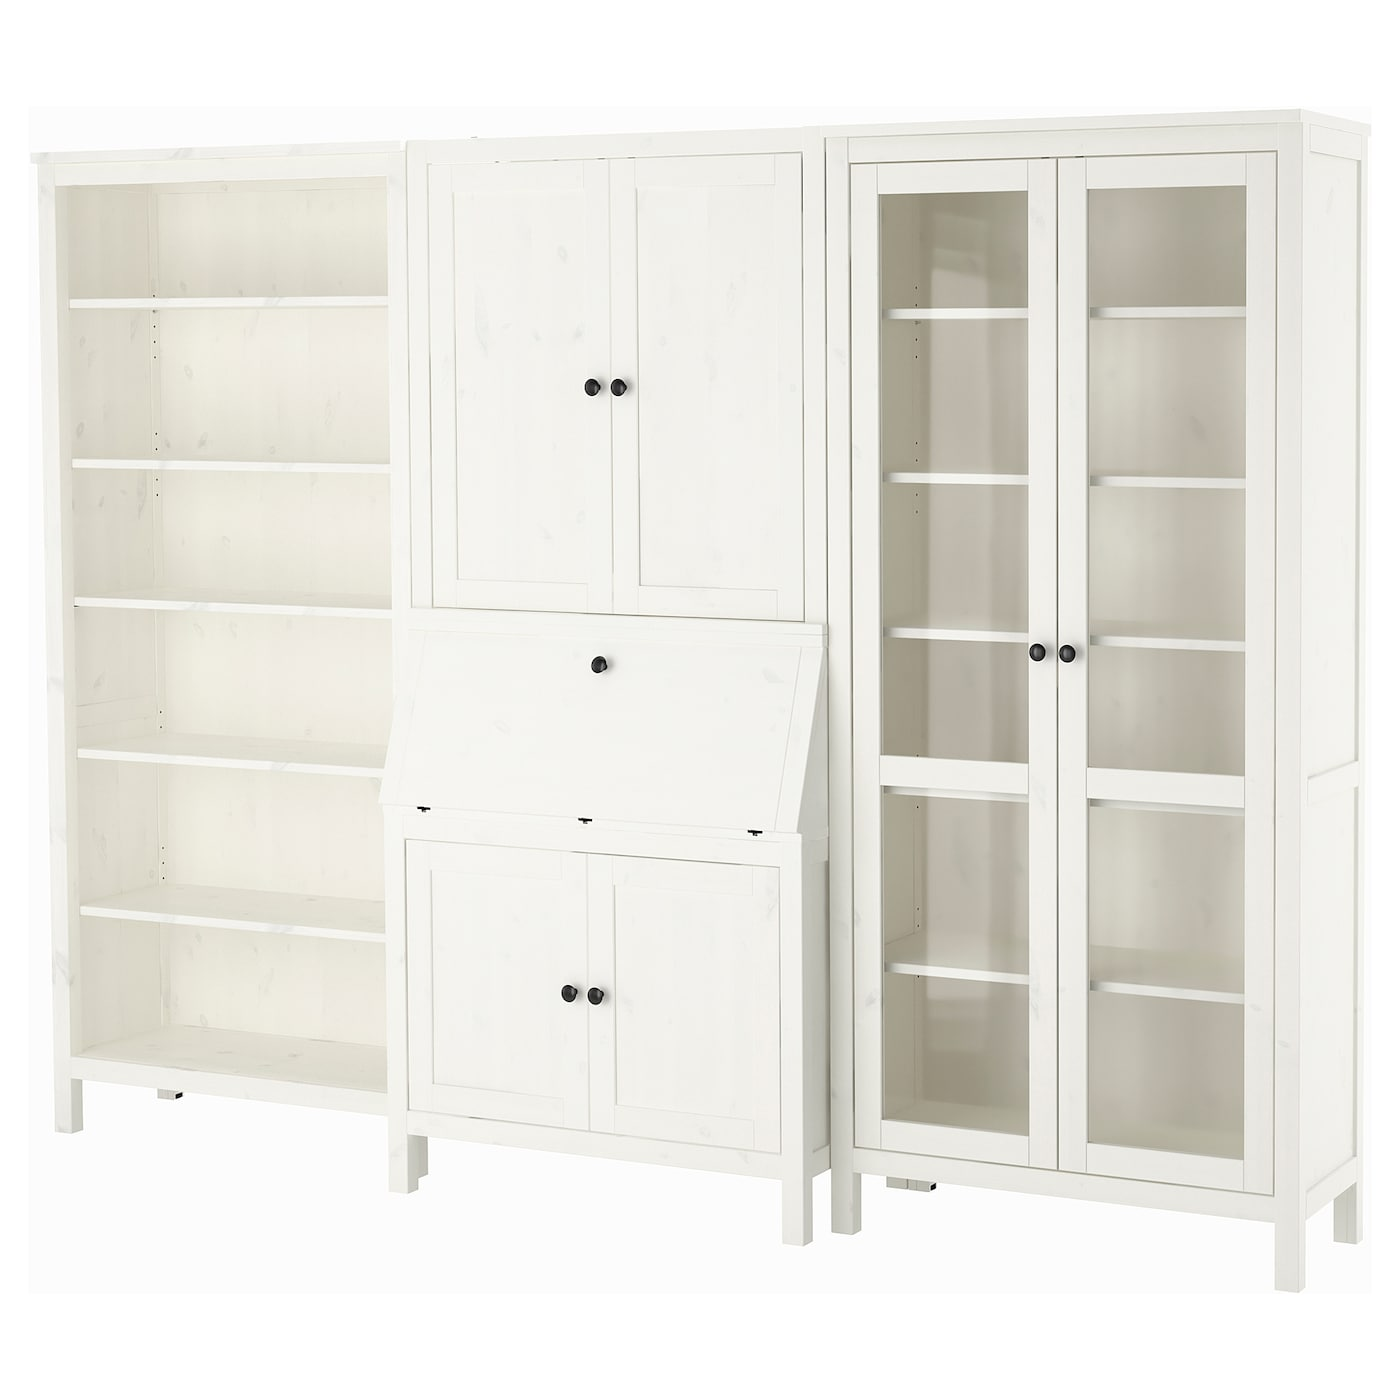 Hemnes bureau with add on unit bookcase white stained for Ikea comodino hemnes